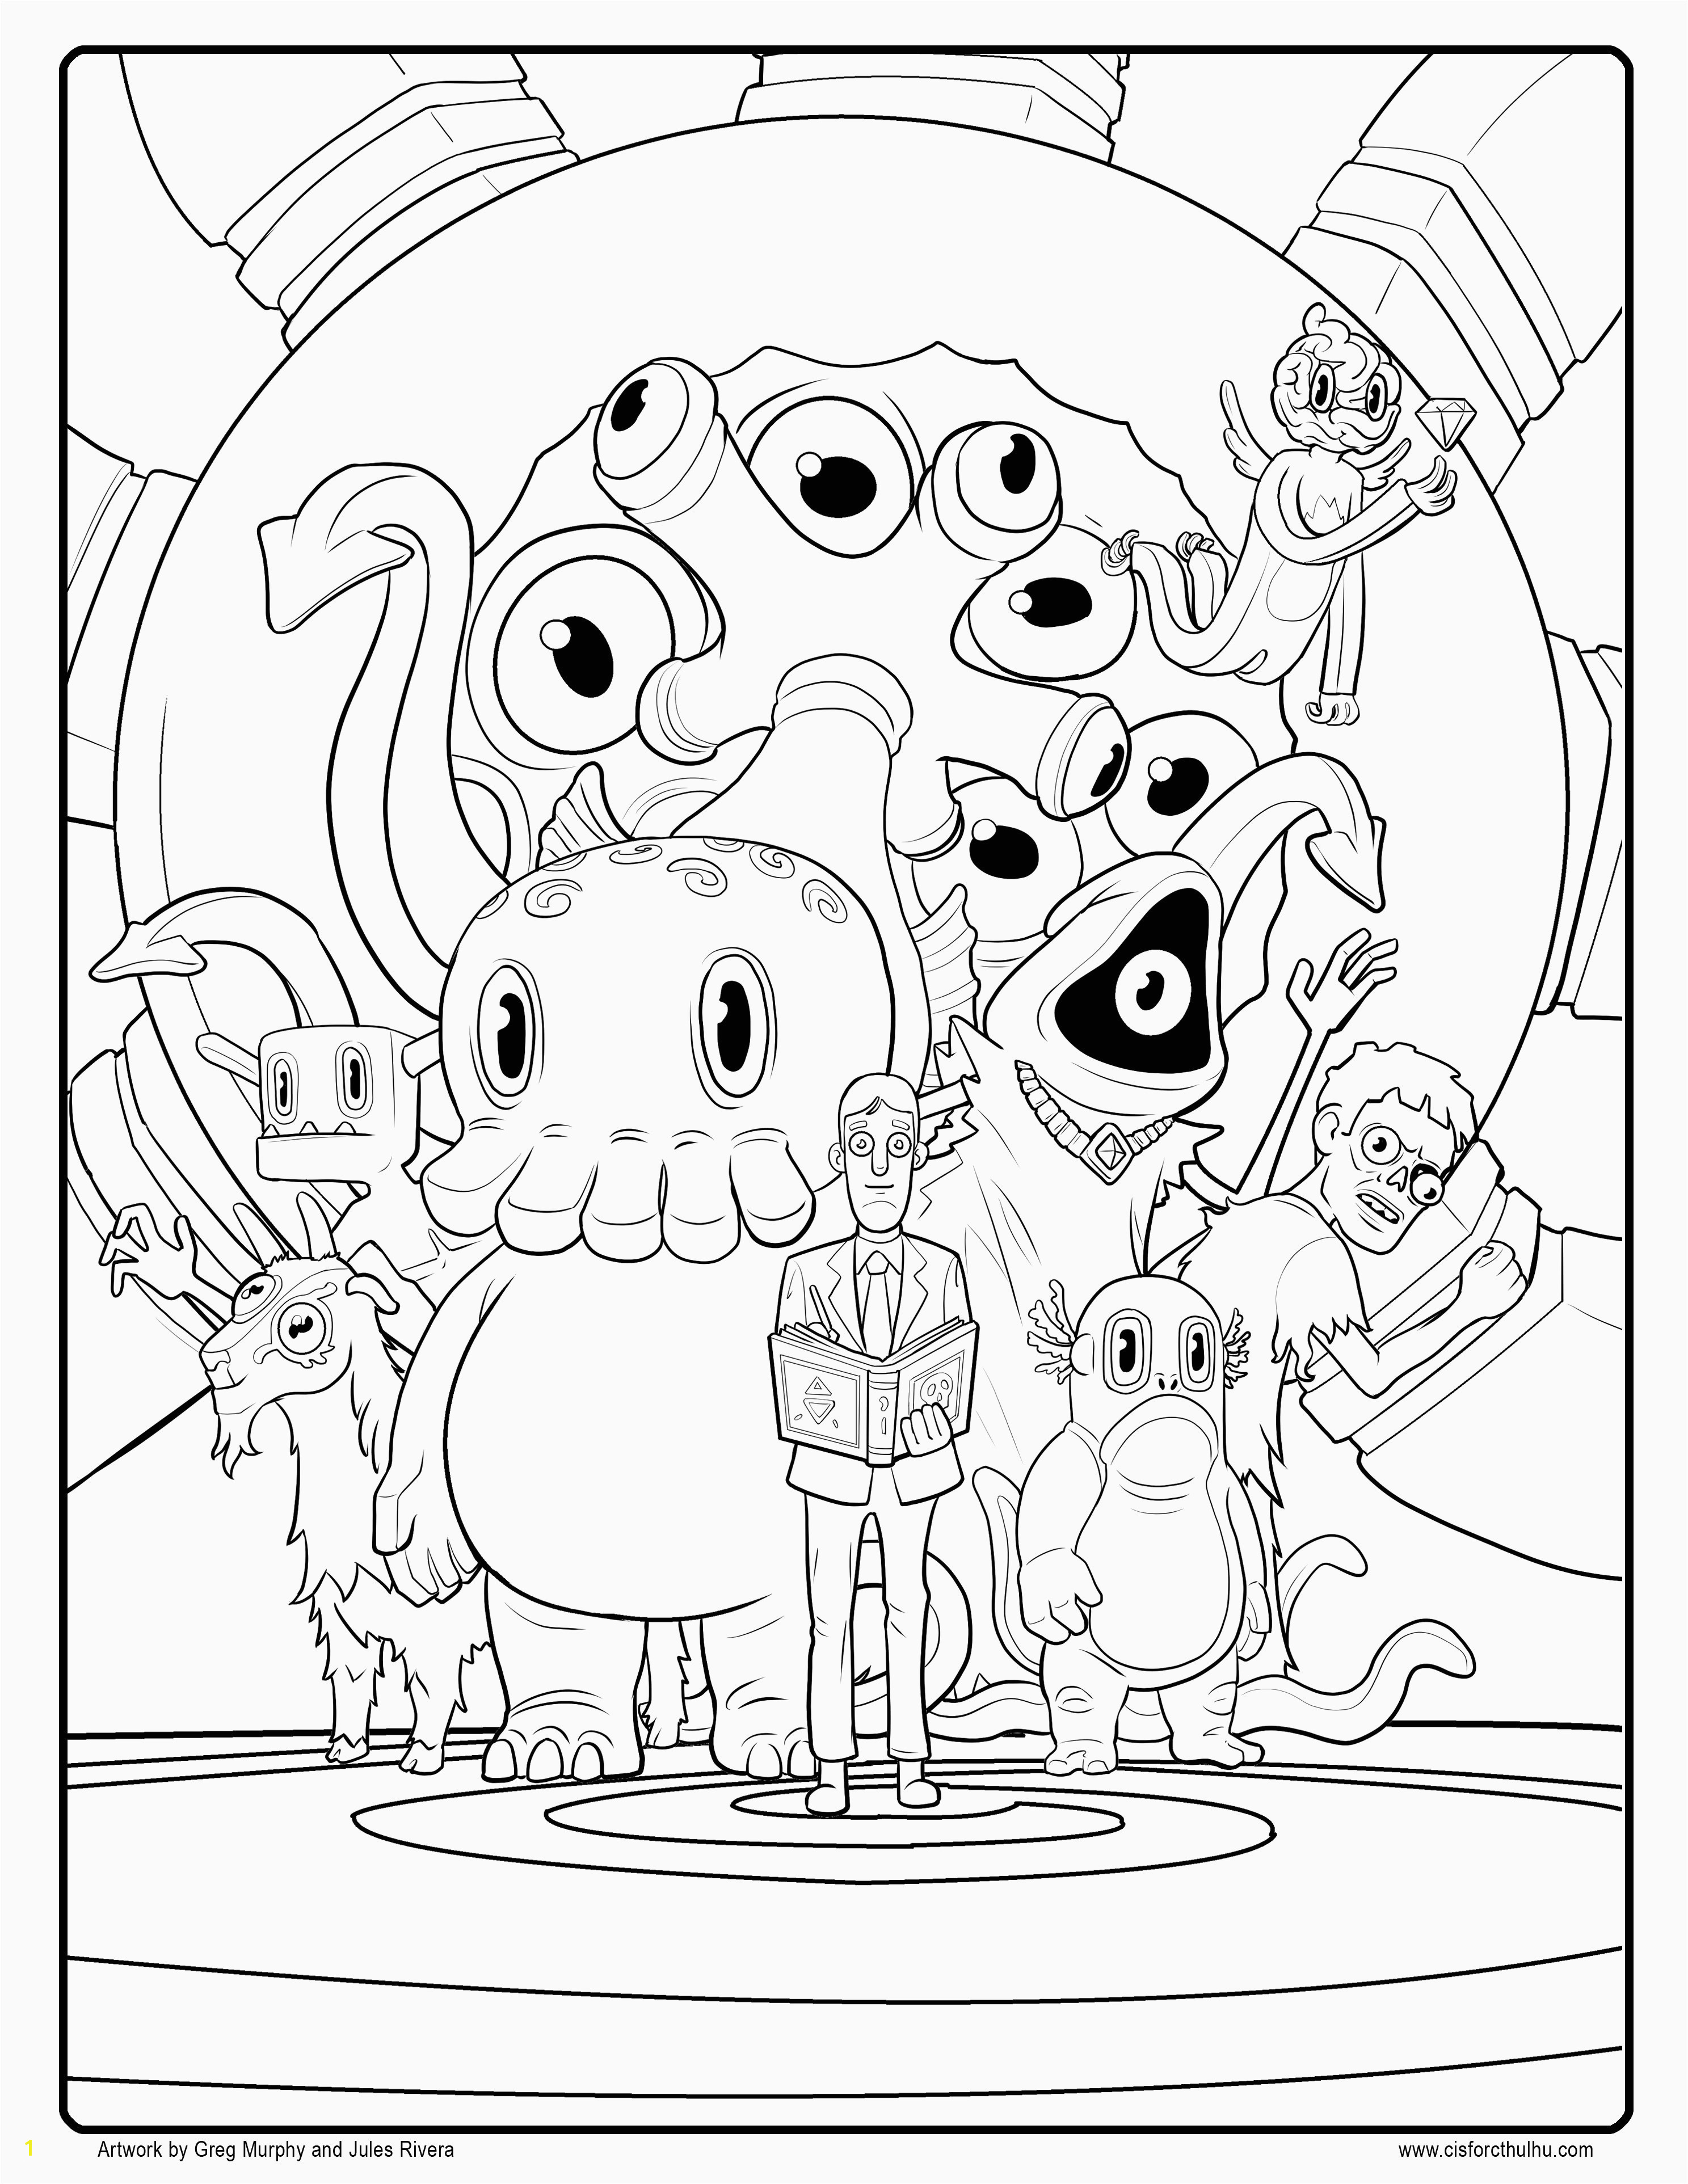 Kazoops Coloring Pages Coloring Pages with Details Best Free Pumpkin Coloring Pages